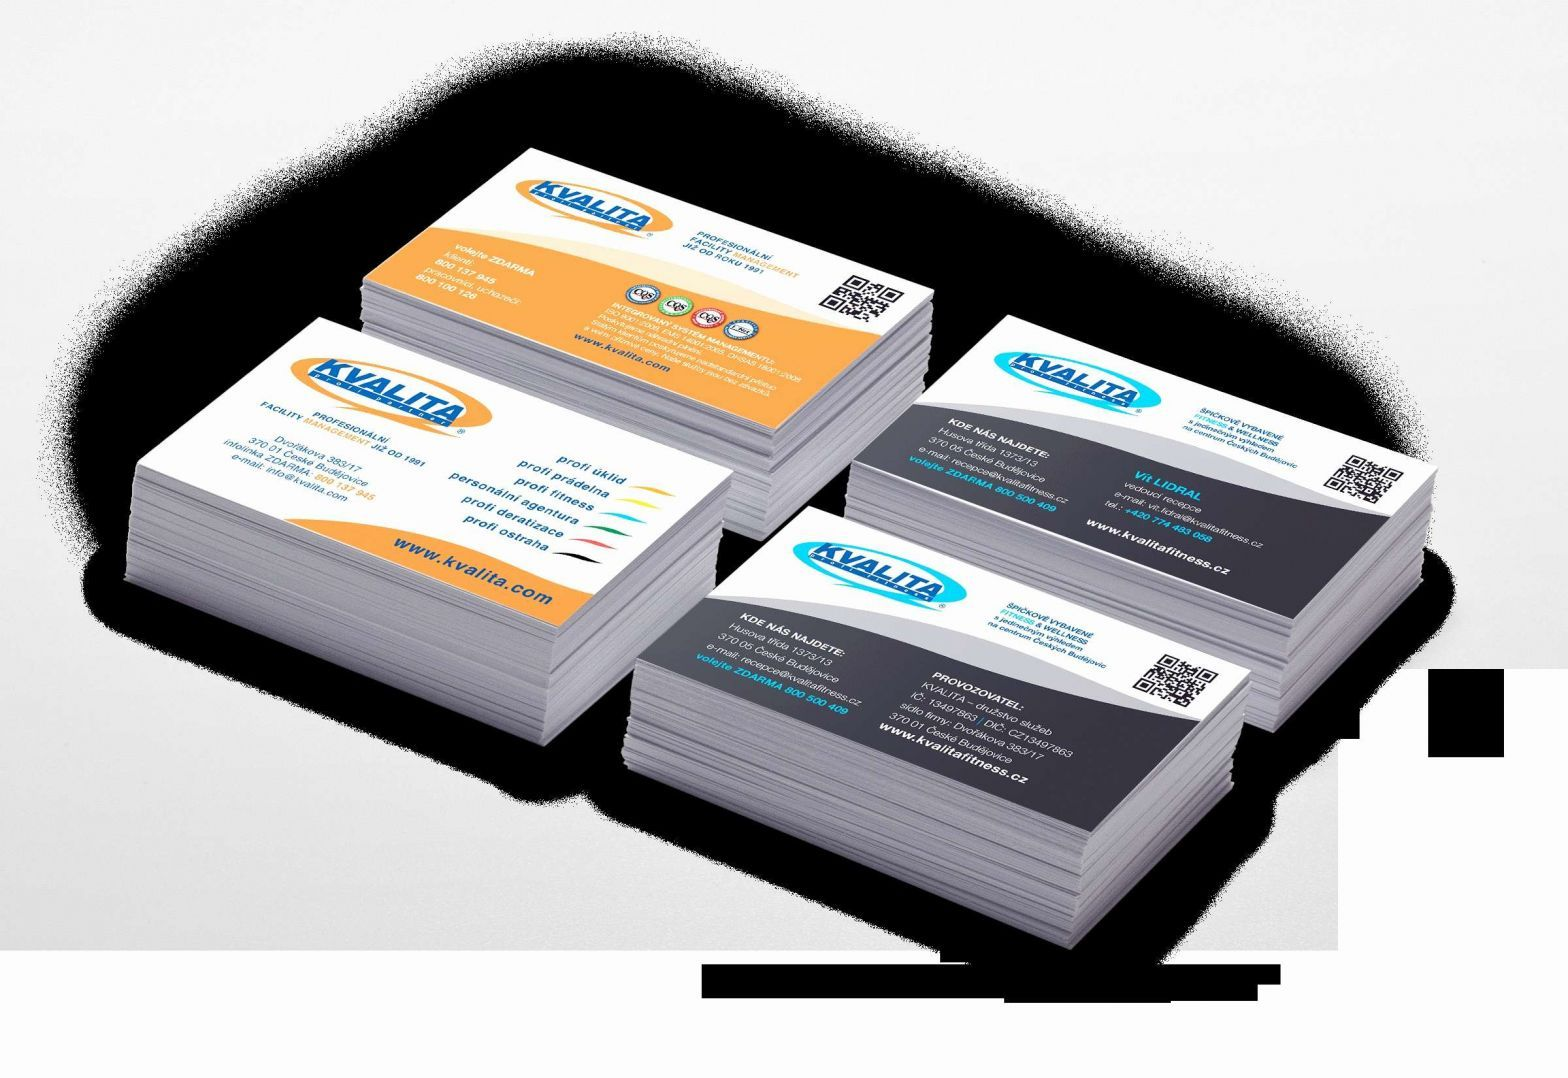 The Awesome Business Card Icons Archives Tatforum With Kinkos Business Card Temp Doterra Business Cards Template Fresh Business Cards Personal Business Cards